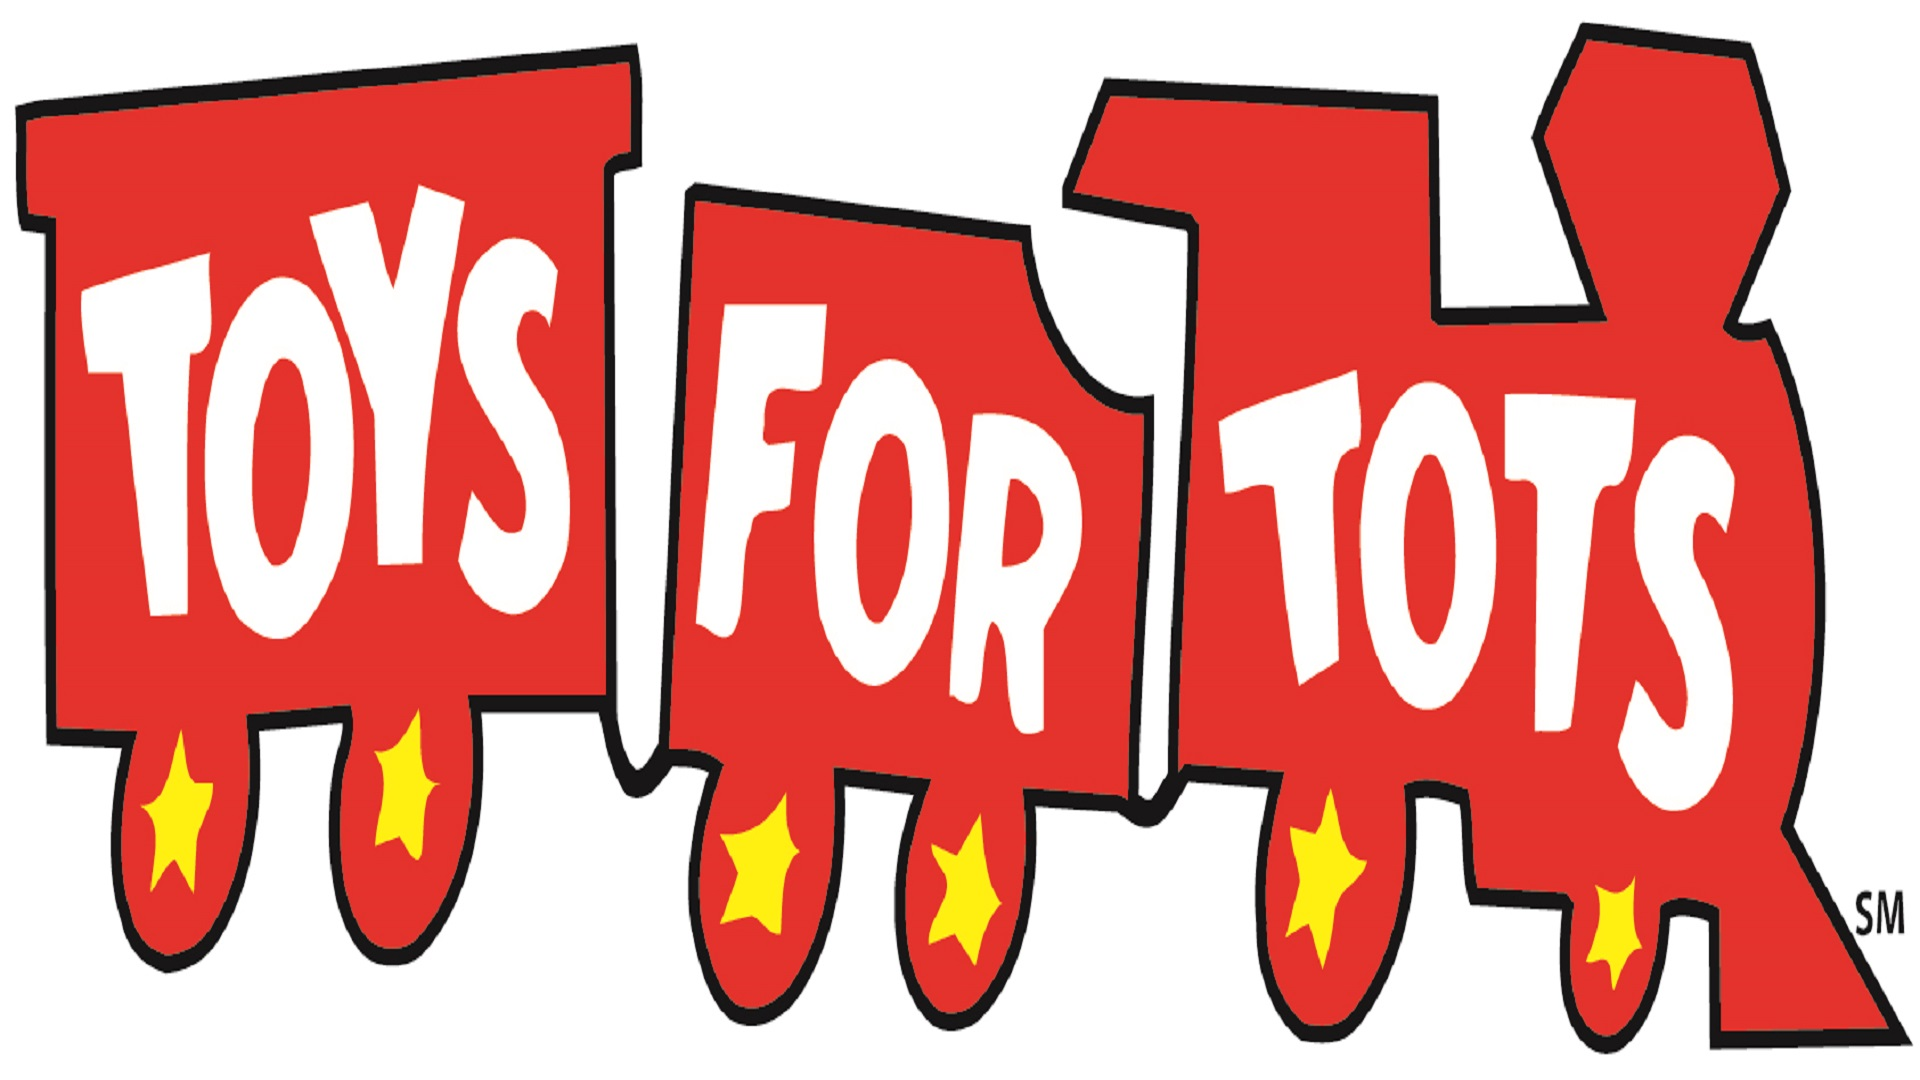 Toys For Totos 9